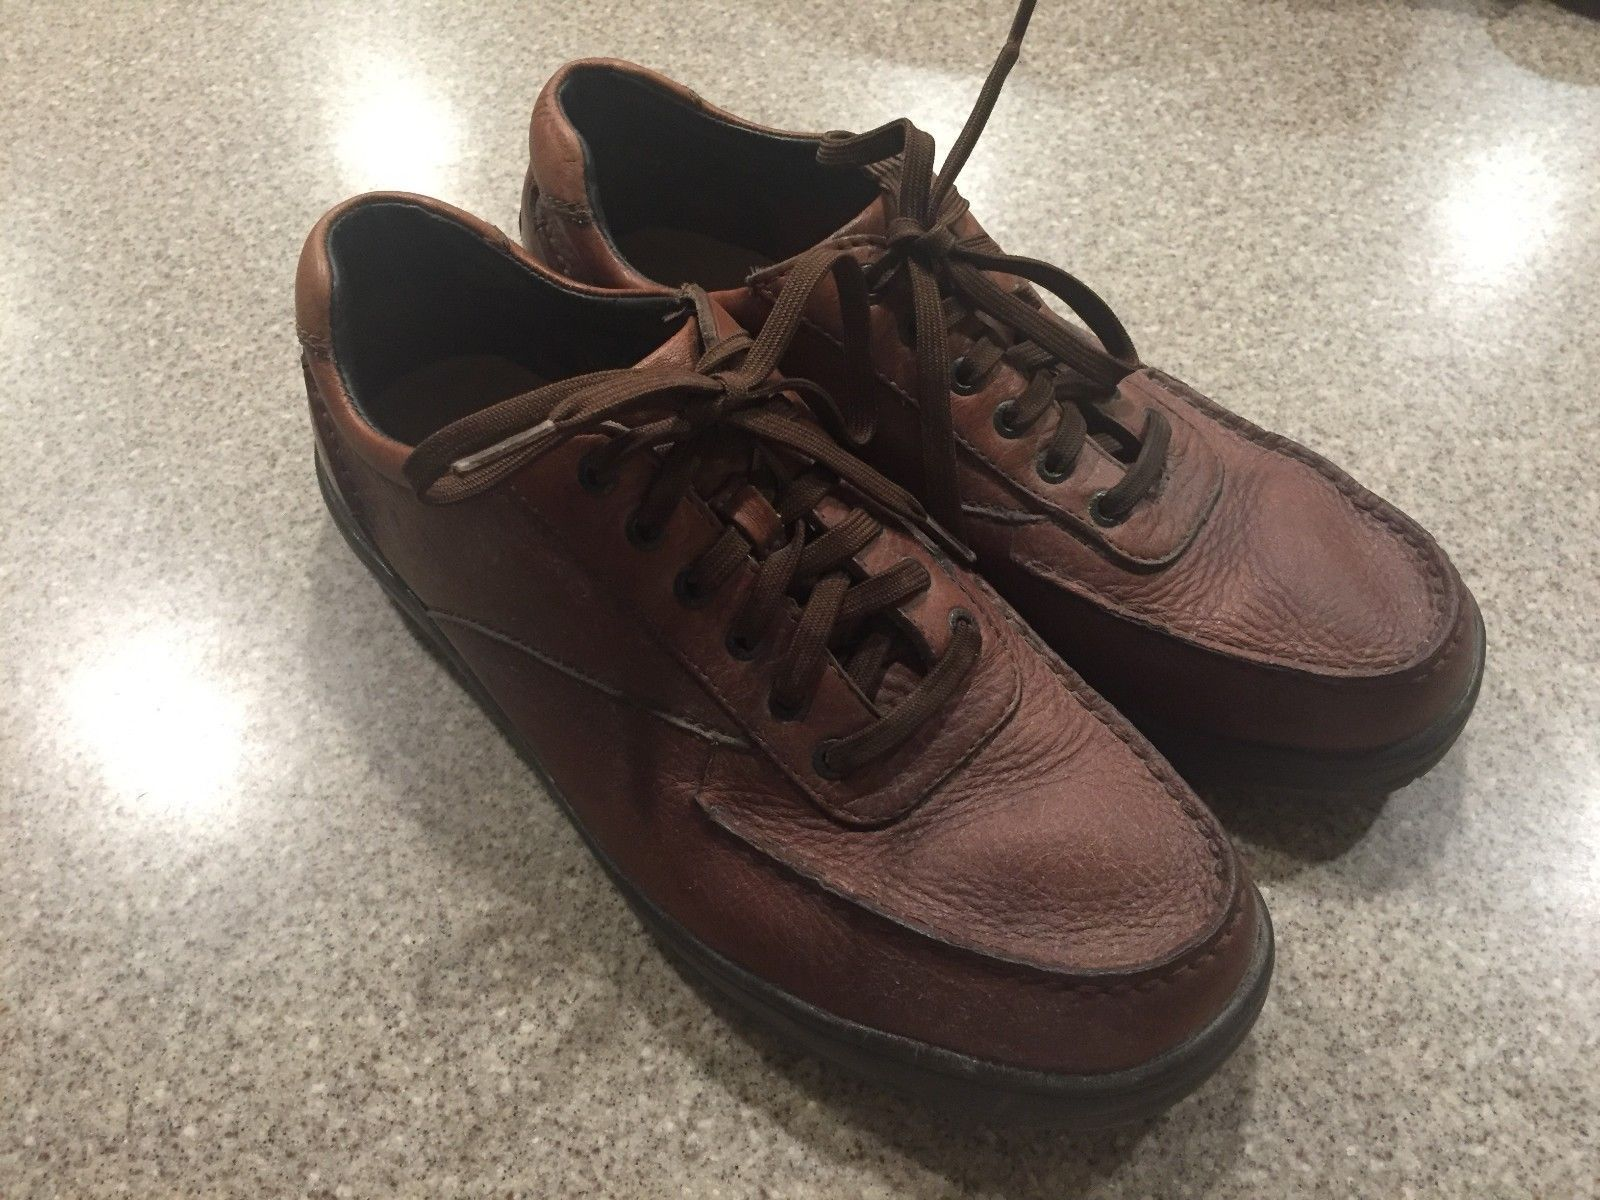 Men's Size Shoes Items And Similar Brown 9 Leather Rockport 50 35Rj4AL